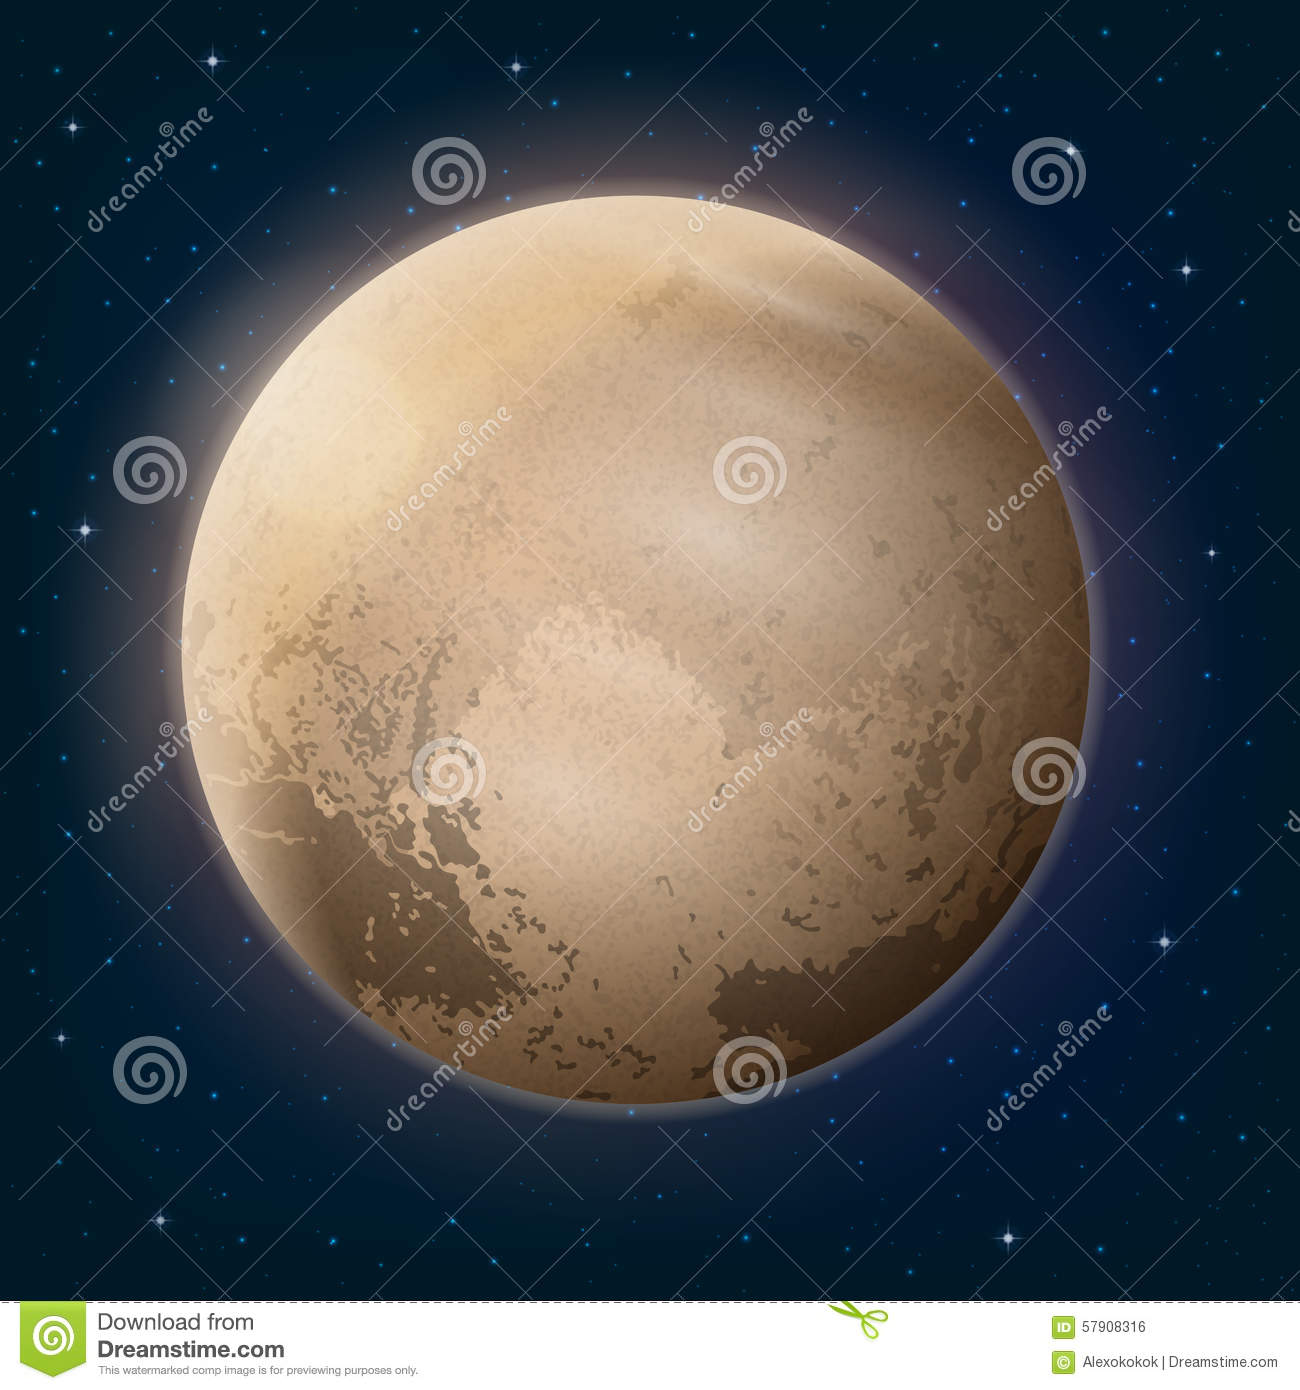 nasa planet pictures of black - photo #29